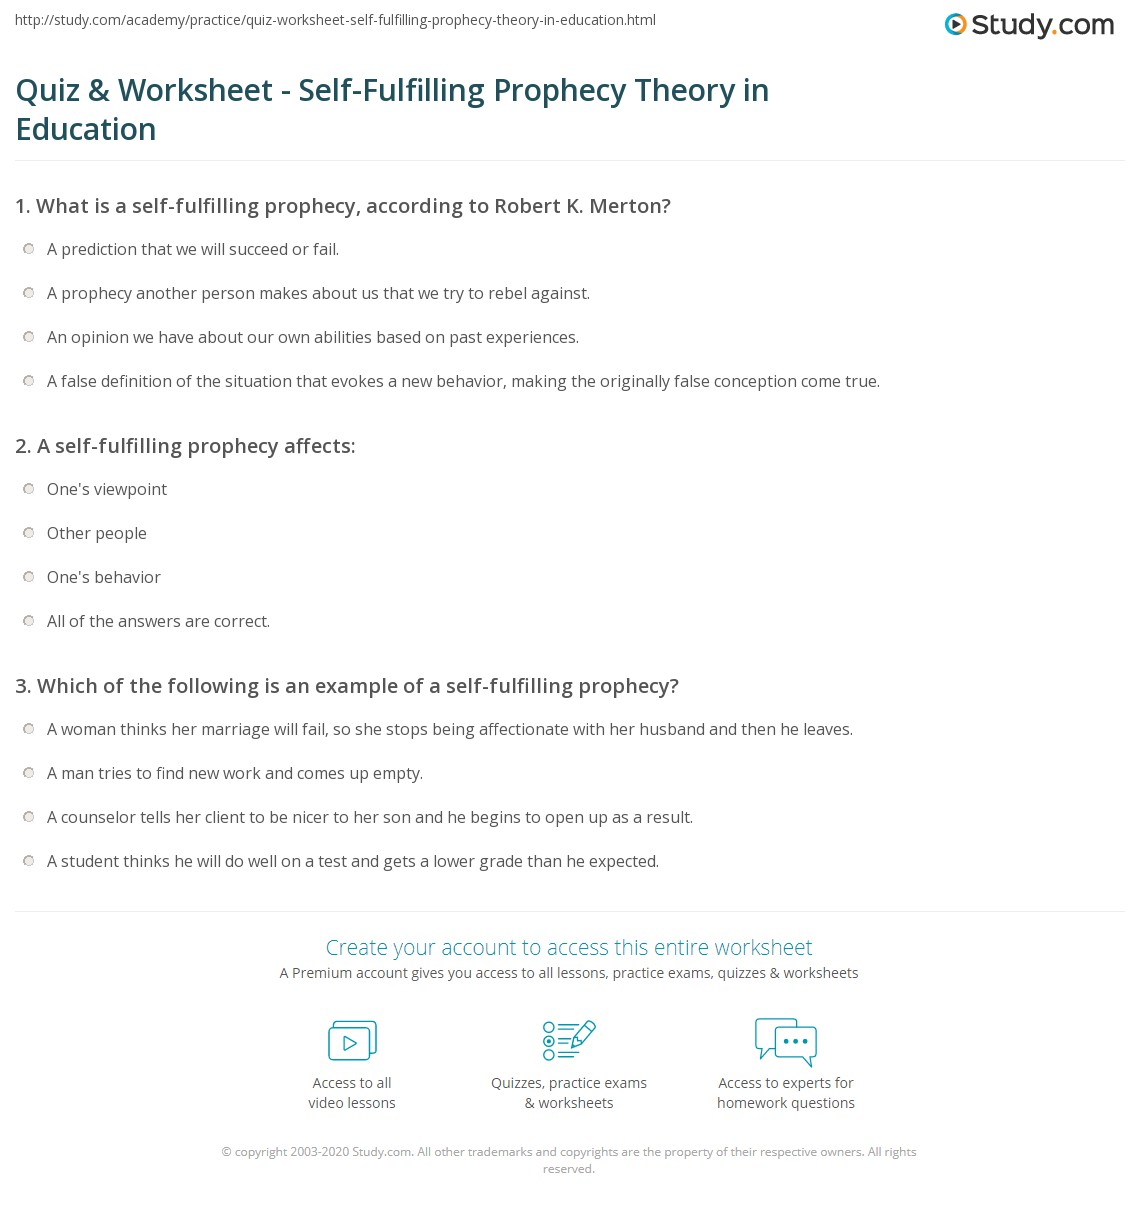 Quiz & Worksheet - Self-Fulfilling Prophecy Theory in